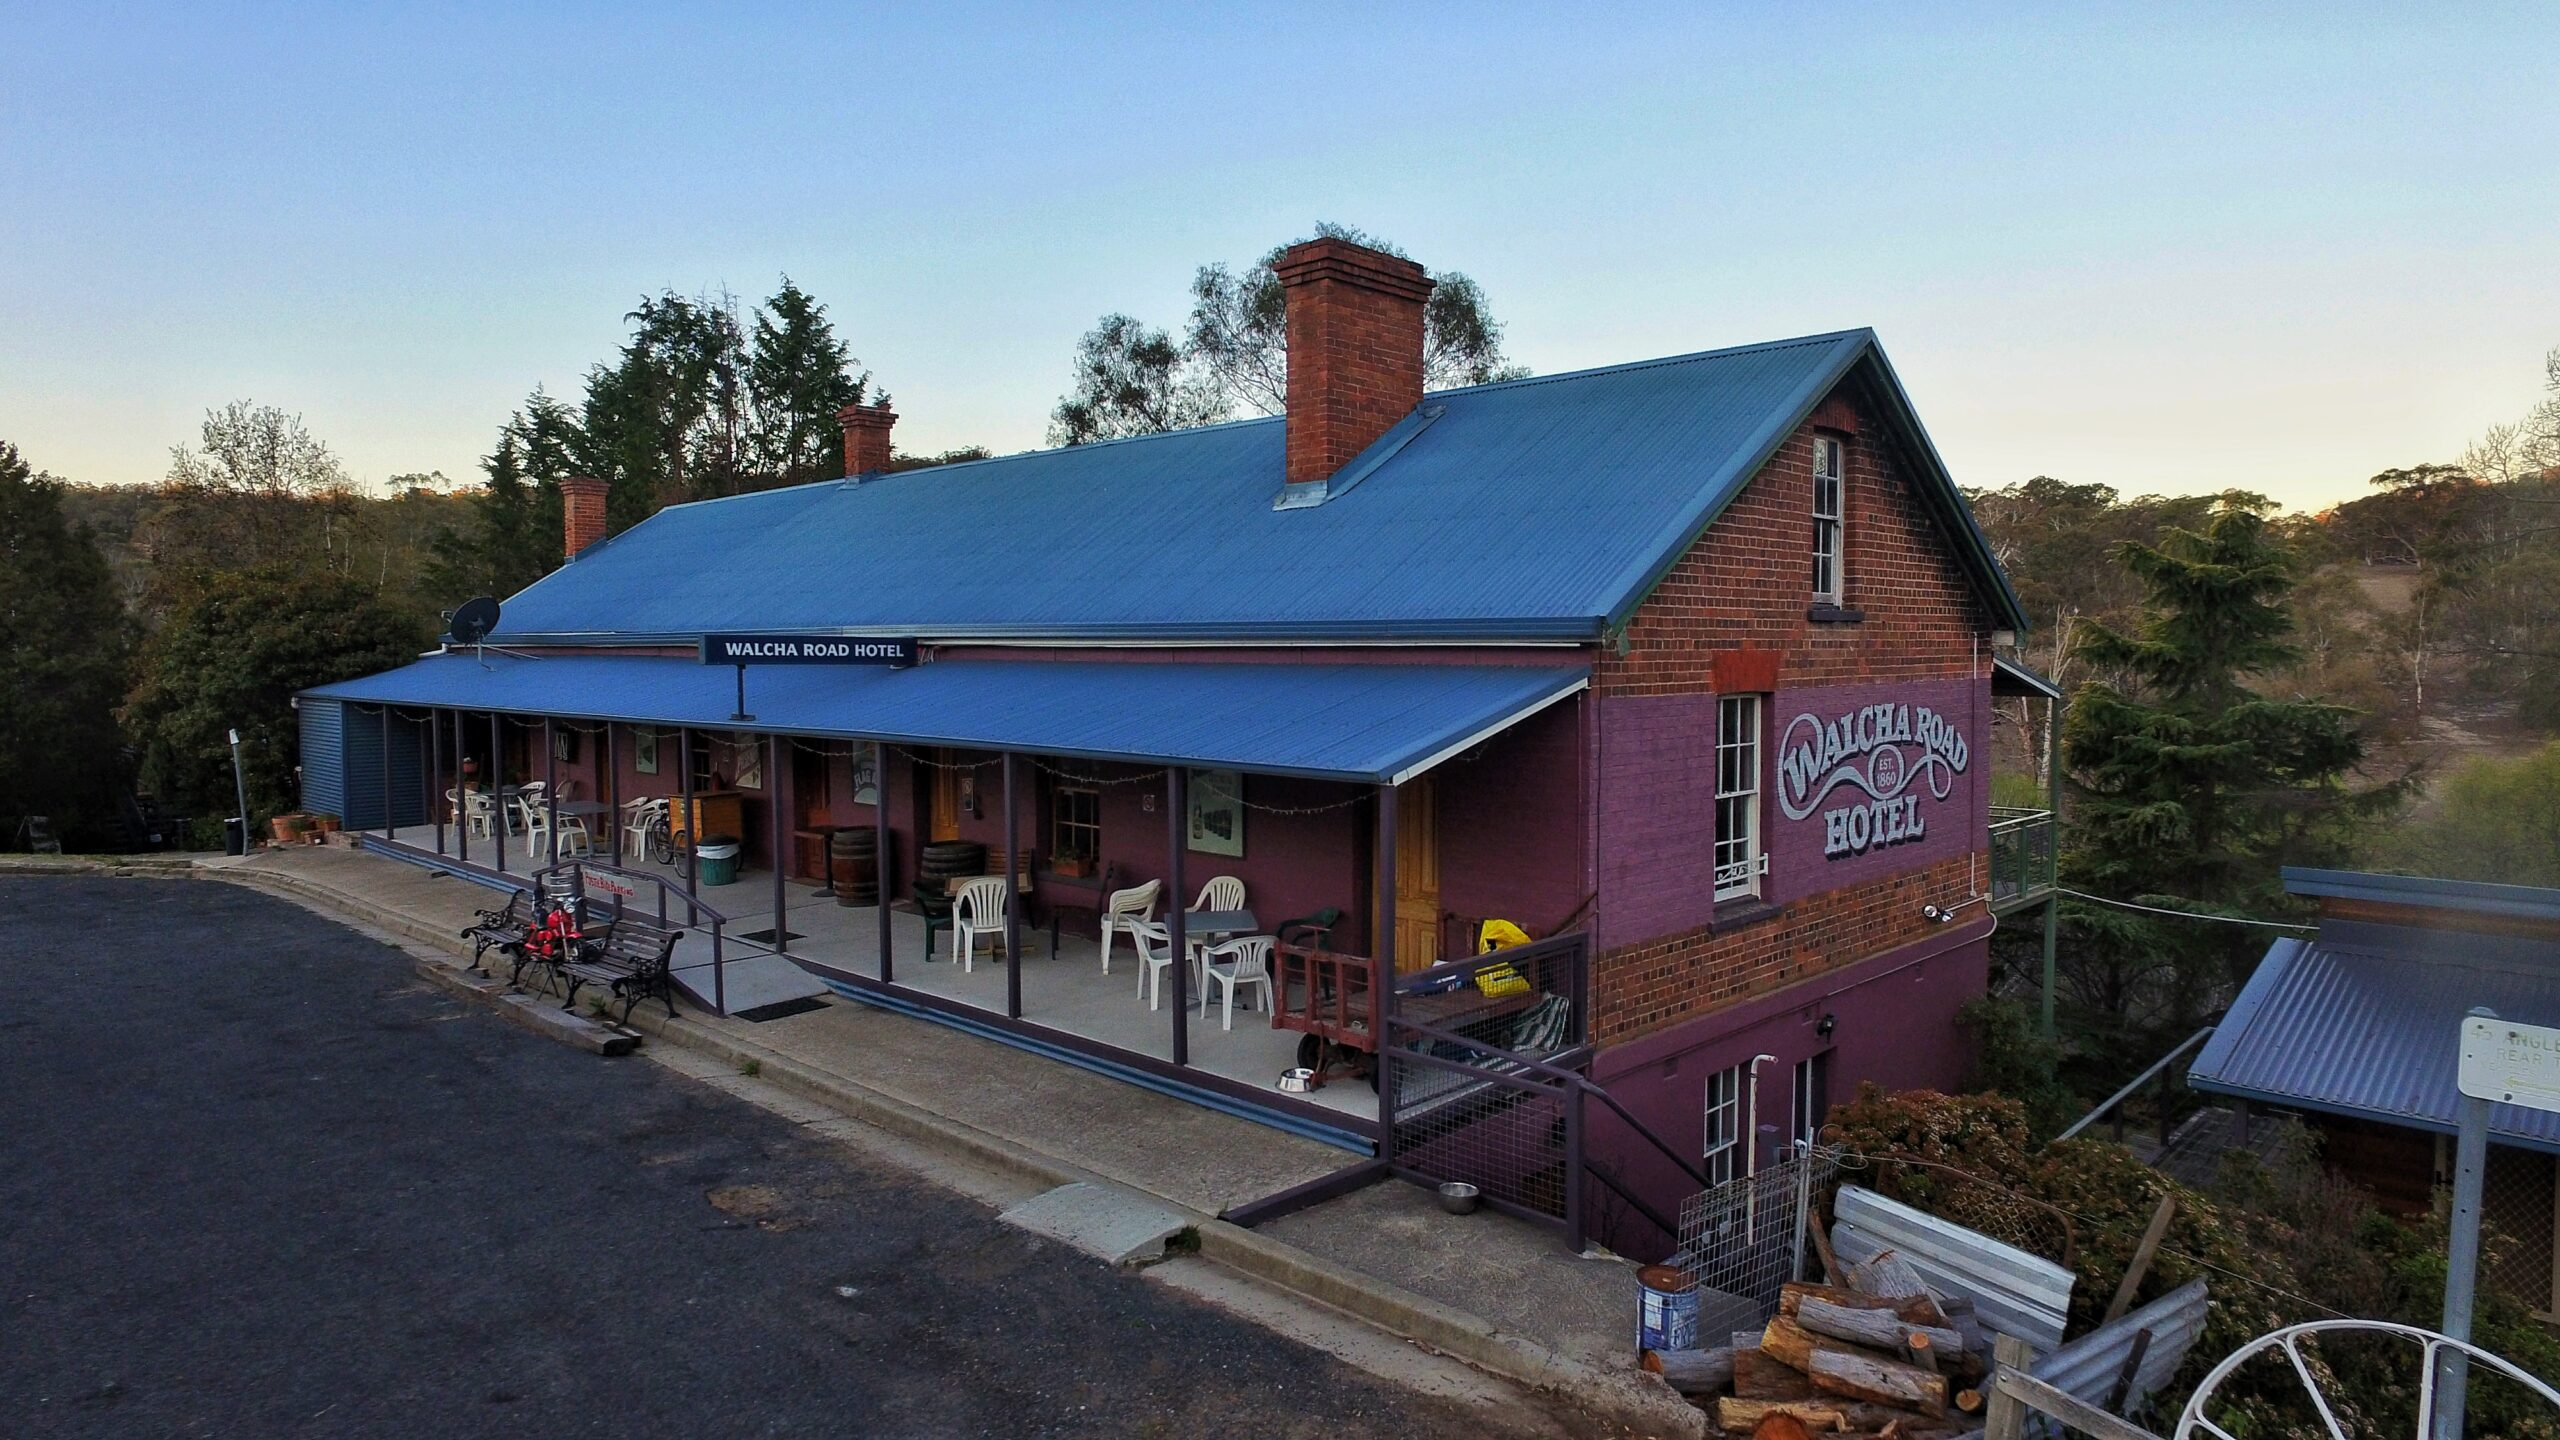 The Walcha Road Hotel which is using the Service NSW app and QR Code